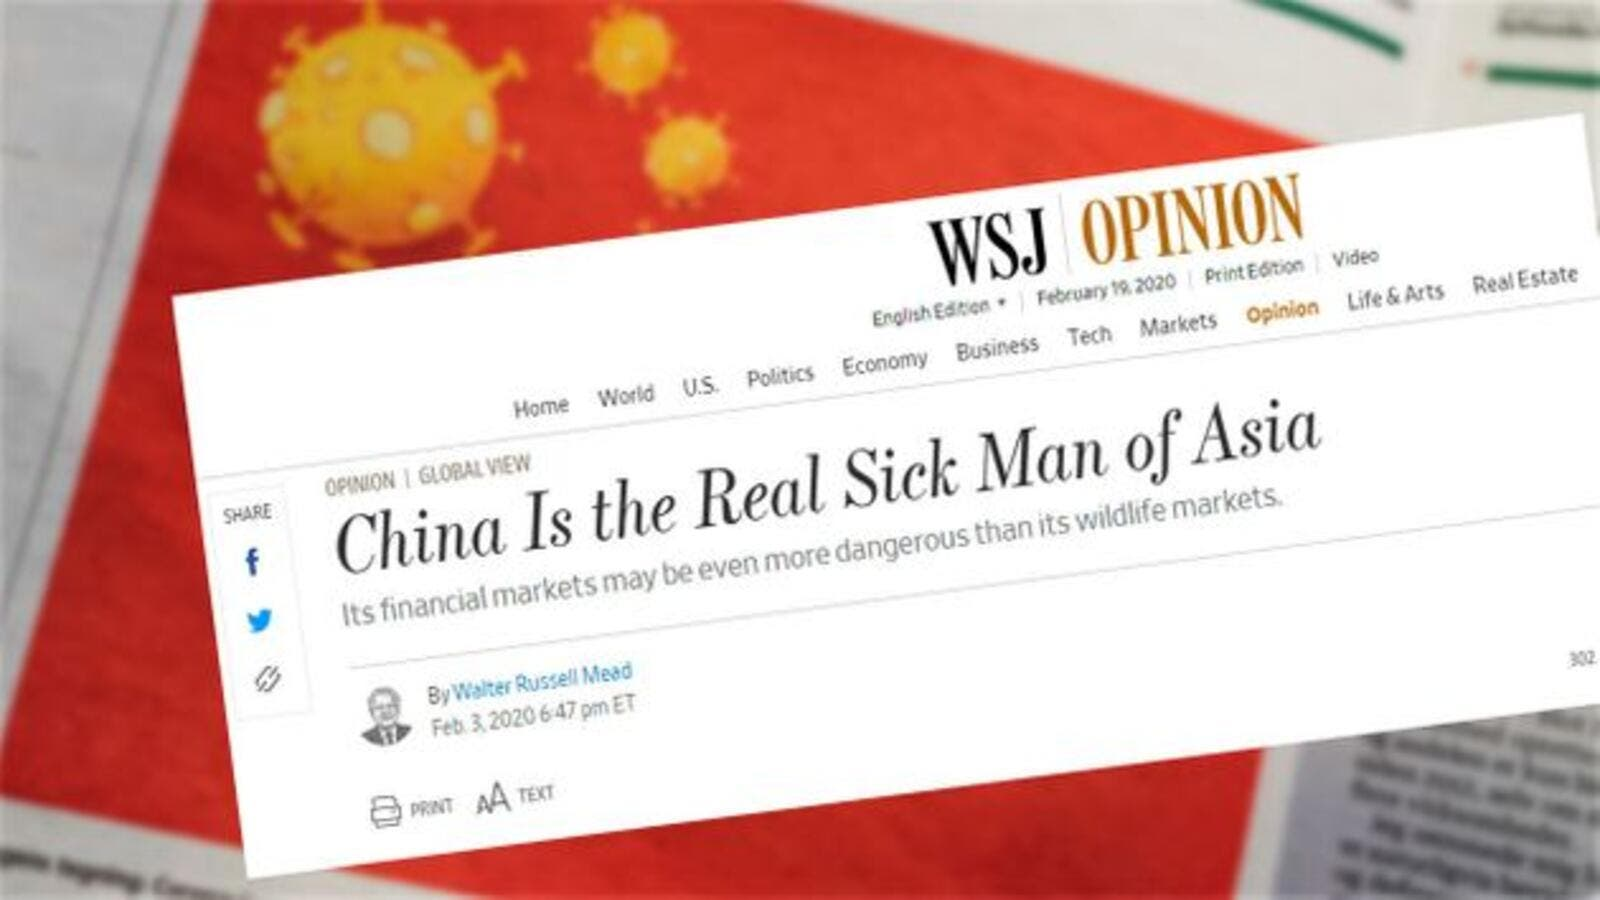 China Expels 3 WSJ Journalists Over a Headline